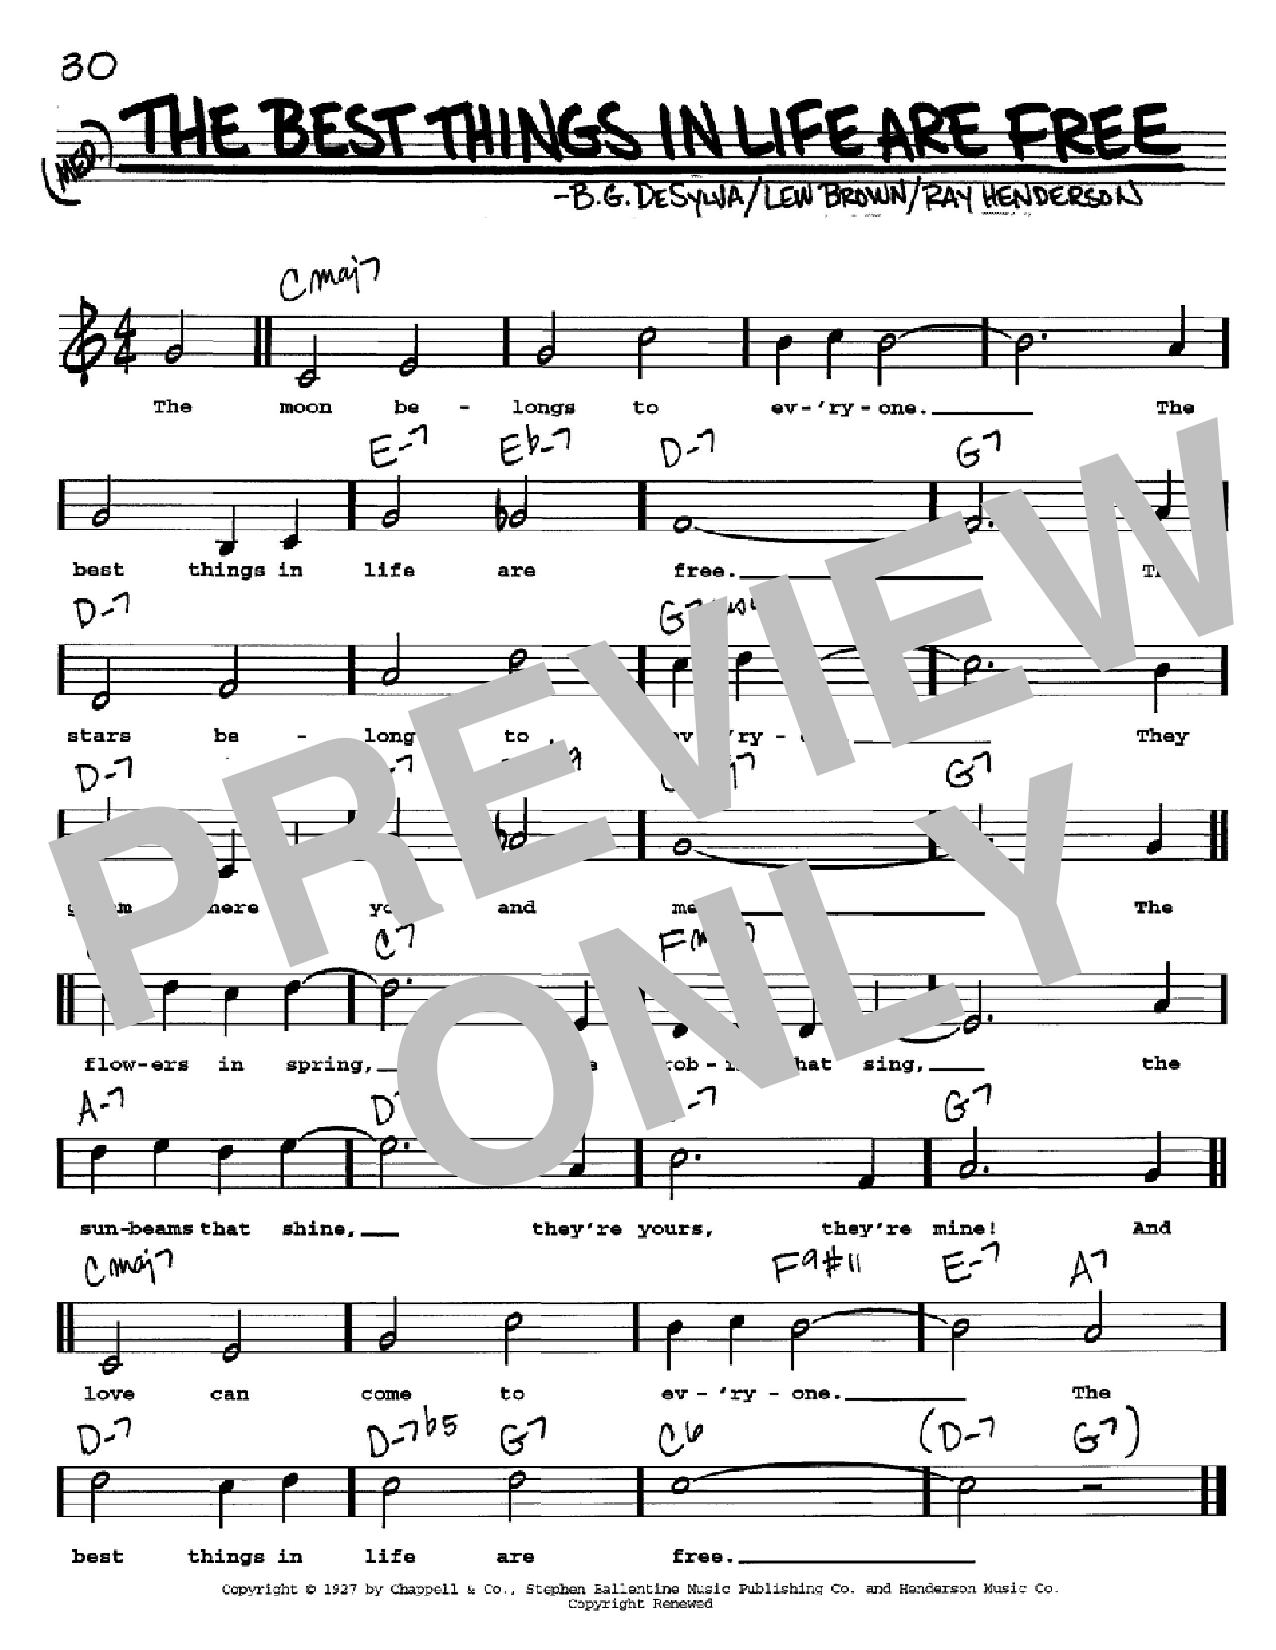 The Best Things In Life Are Free sheet music for voice and other instruments (Vocal Volume 2) by Ray Henderson